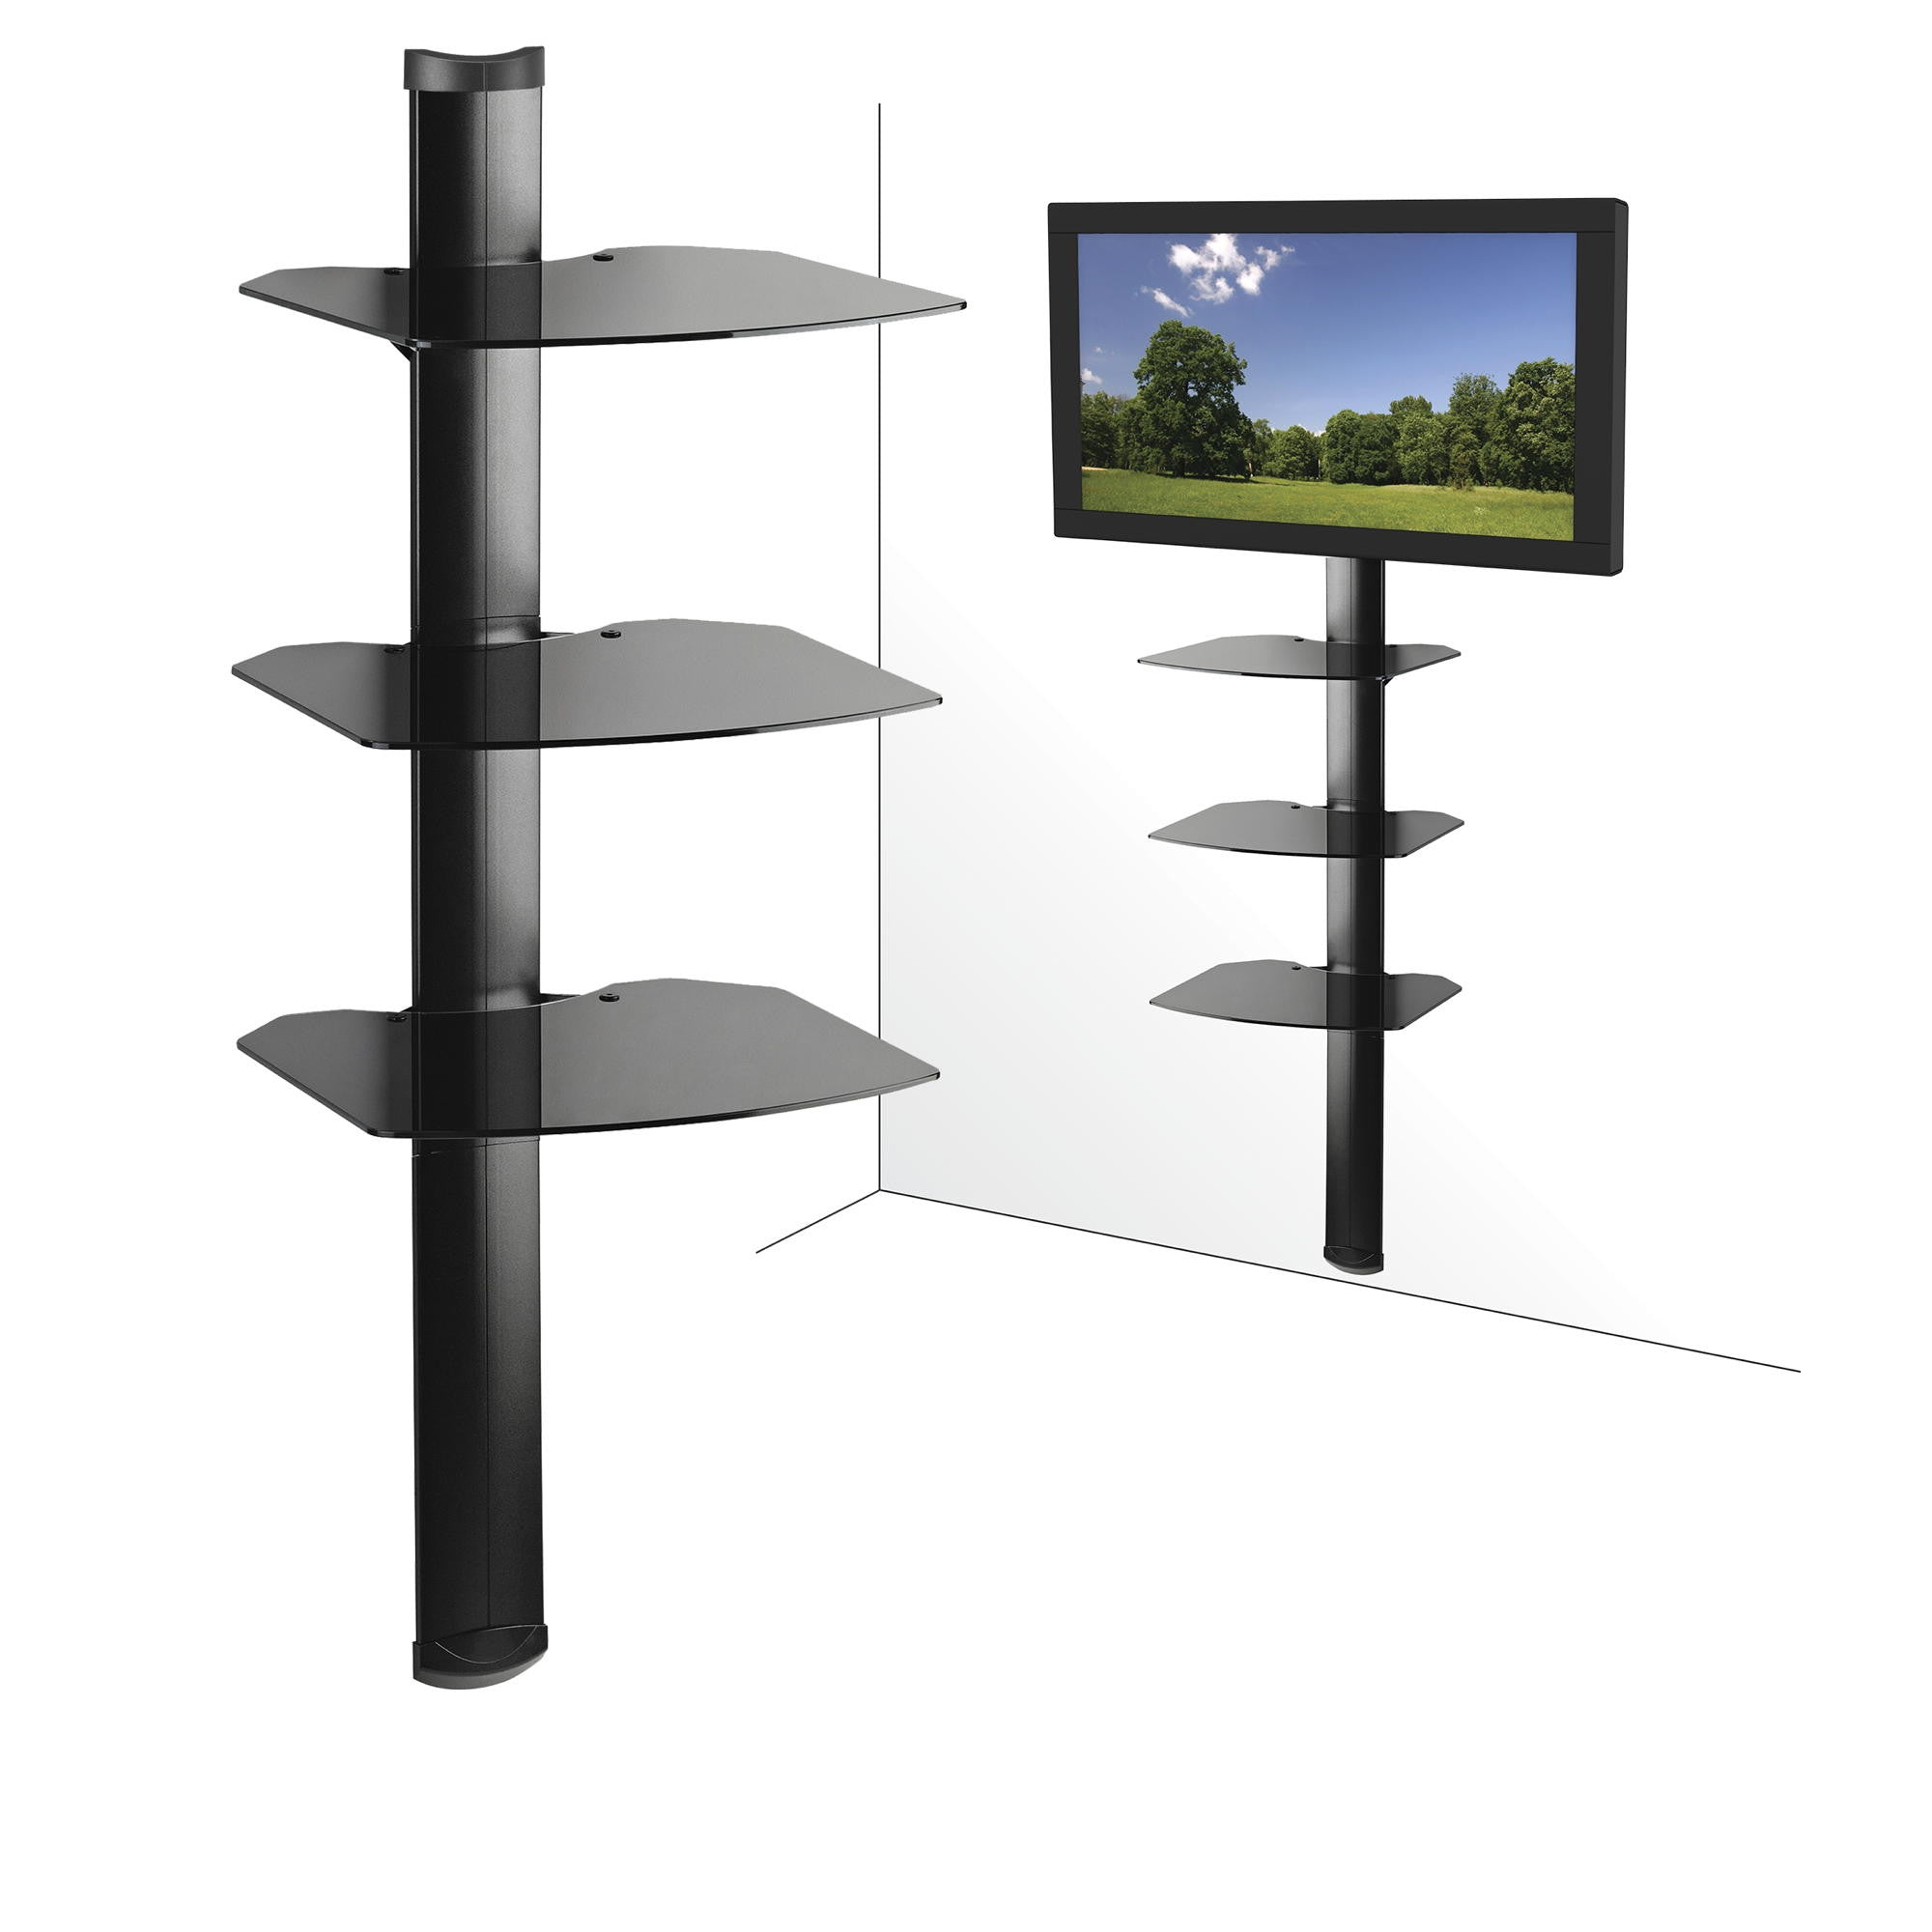 x system shelves mount pl wall steel storability shelving com h w d in shop lowes organization mounted storage at shelf